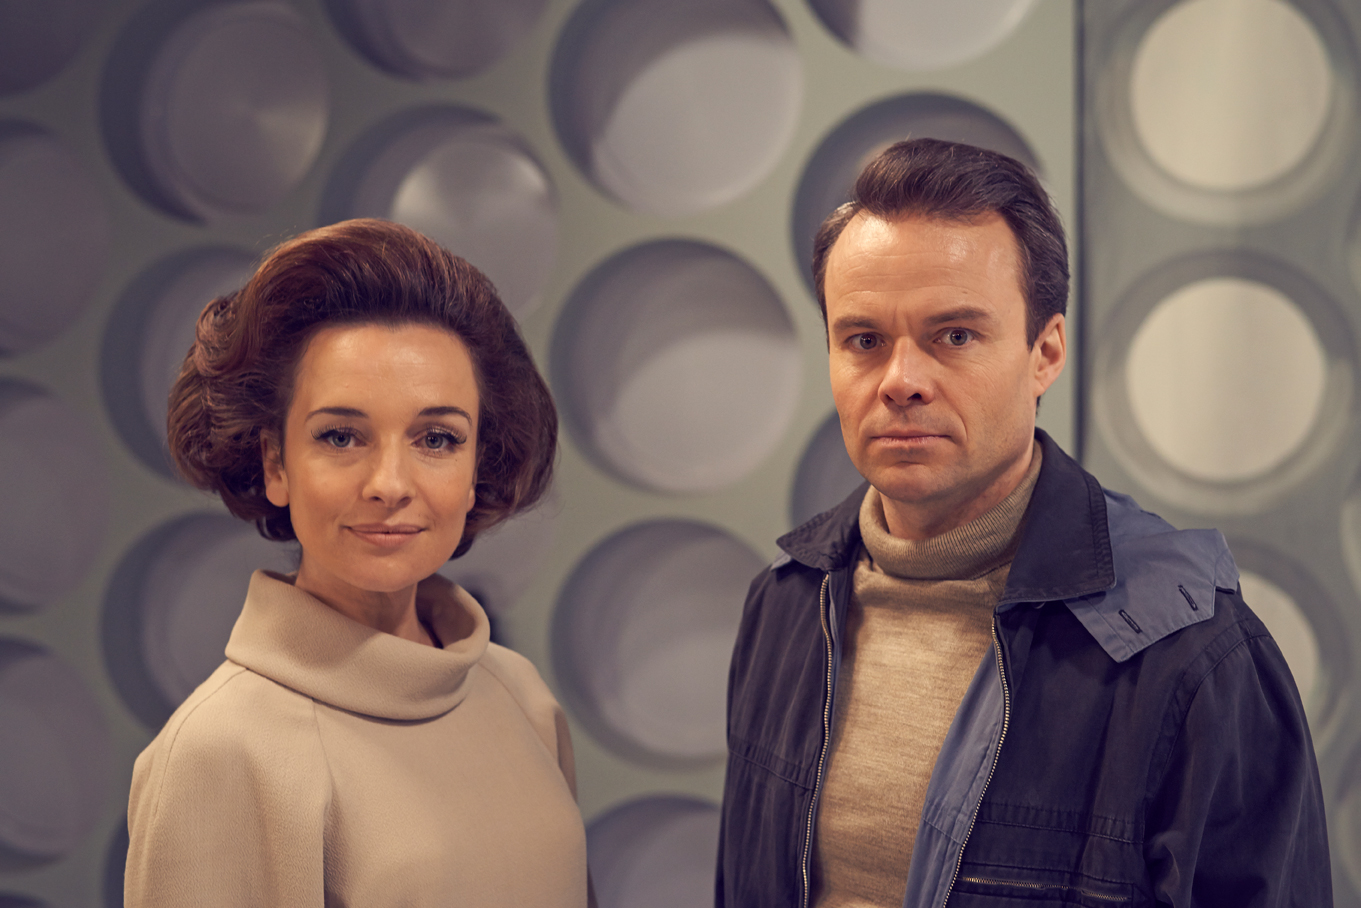 Jemma Powell as Jacqueline Hill (who played Barbara Wright) and Jamie Glover as William Russell (who played Ian Chesterton) in 'An Adventure in Space and Time' (Photo: BBC AMERICA)